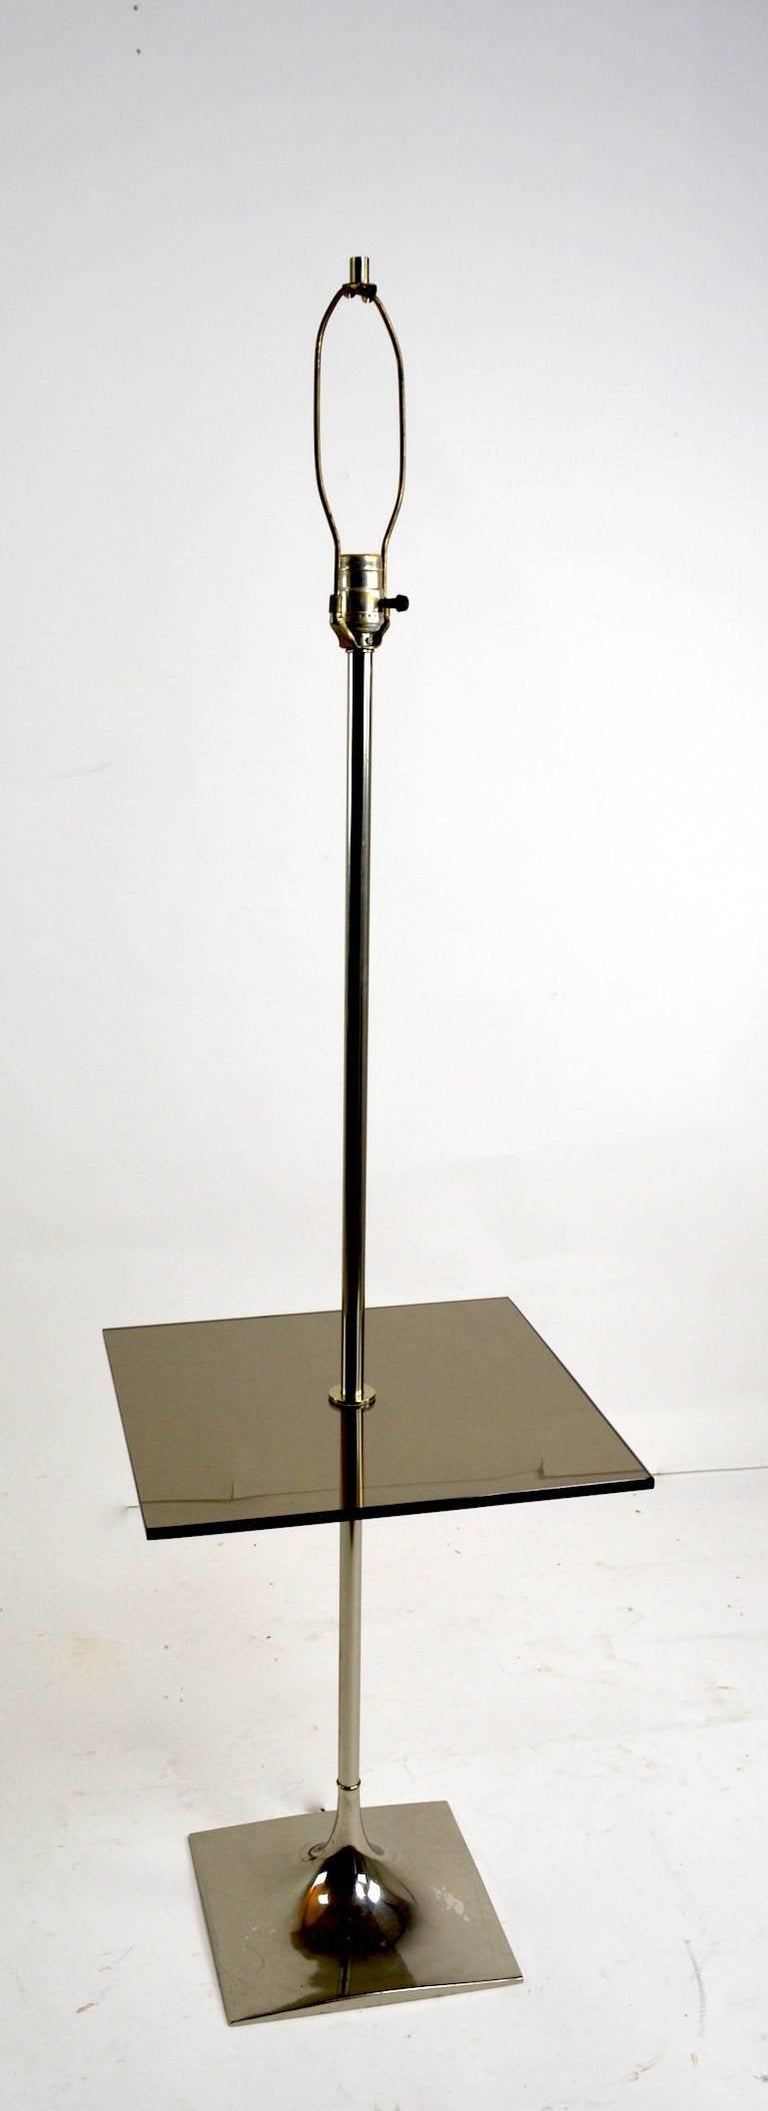 Smoked Glass Floor Table Lamp by Laurel For Sale